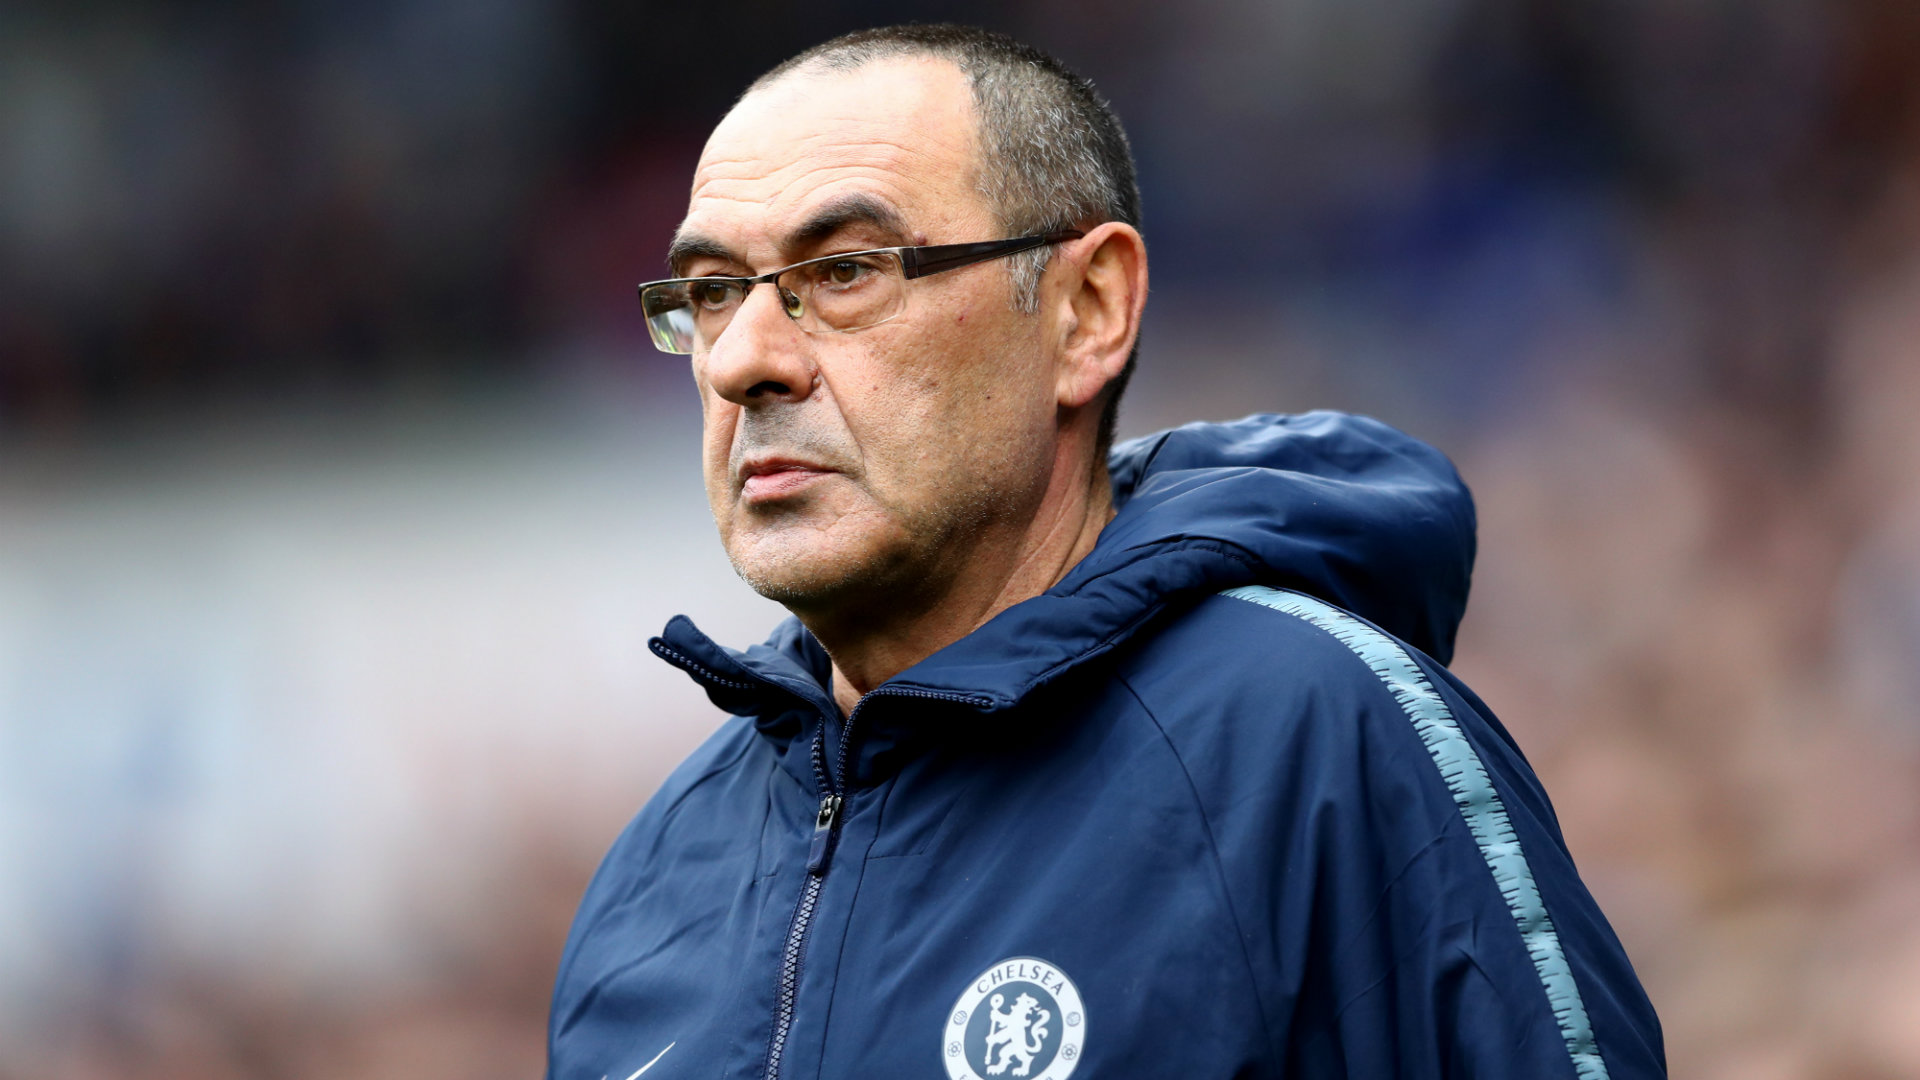 Callum Hudson-Odoi: Sarri confirms plans for rising star's full Chelsea debut